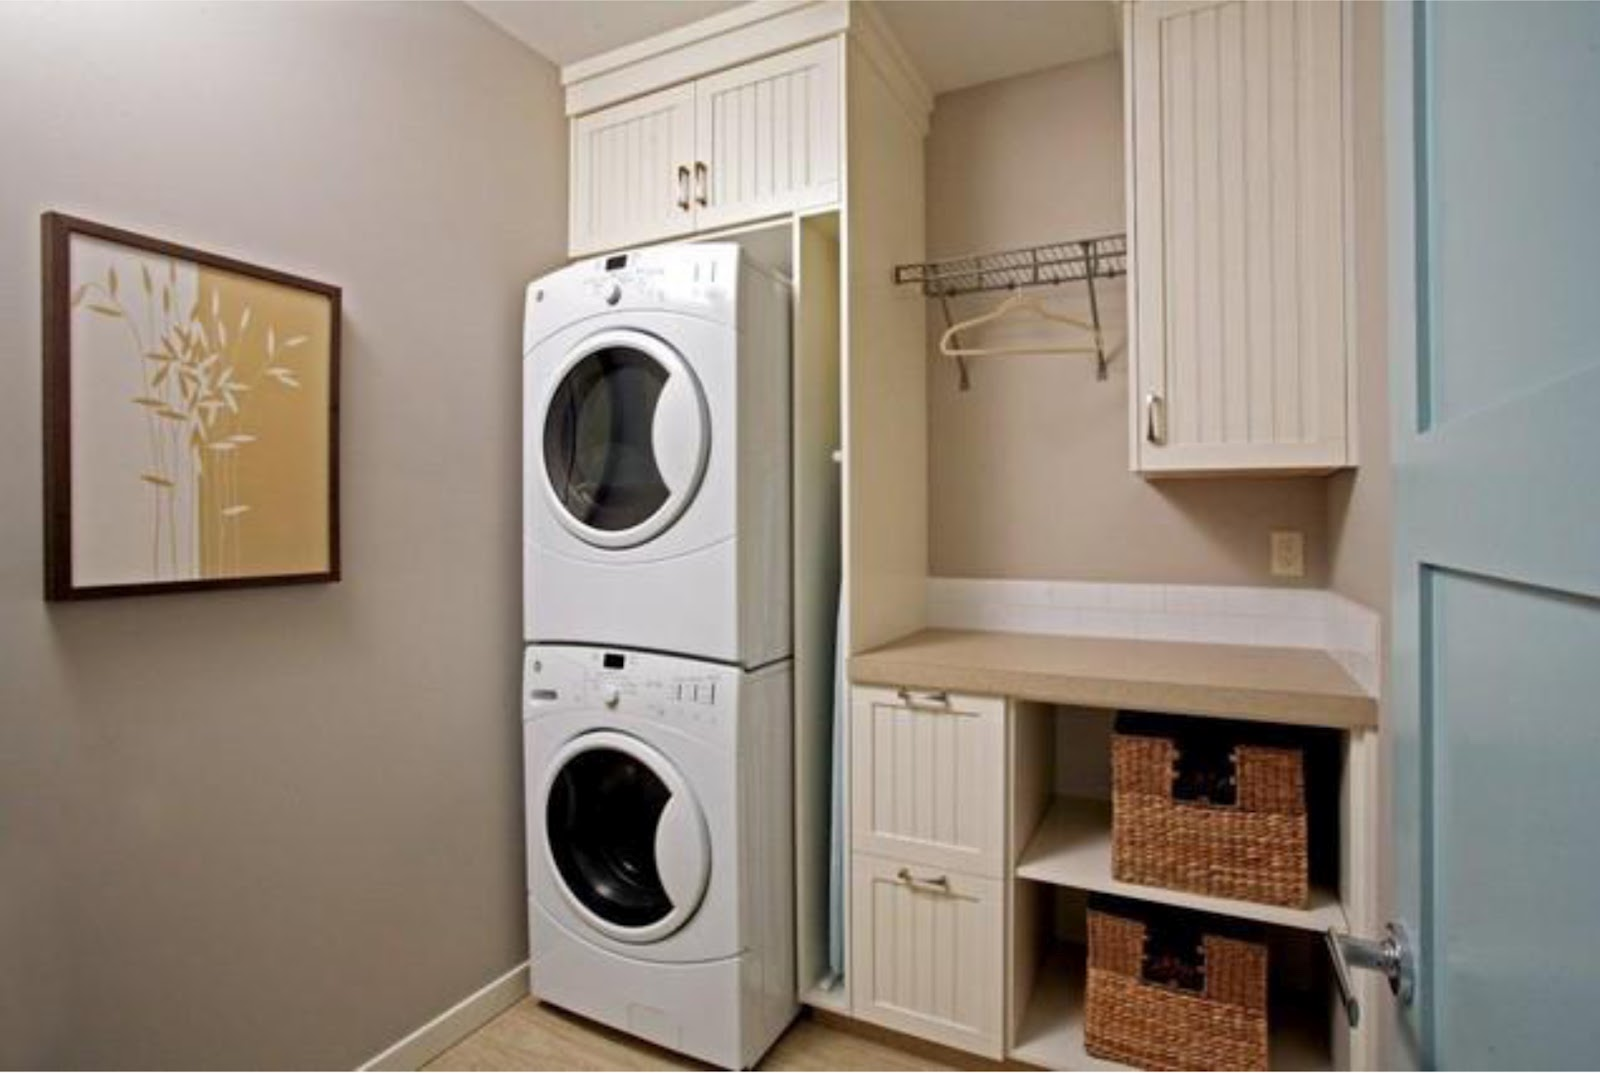 Old Fashioned Laundry Room Cabinets Completing Small Area with Wicker Baskets and Stacked Washing Machines